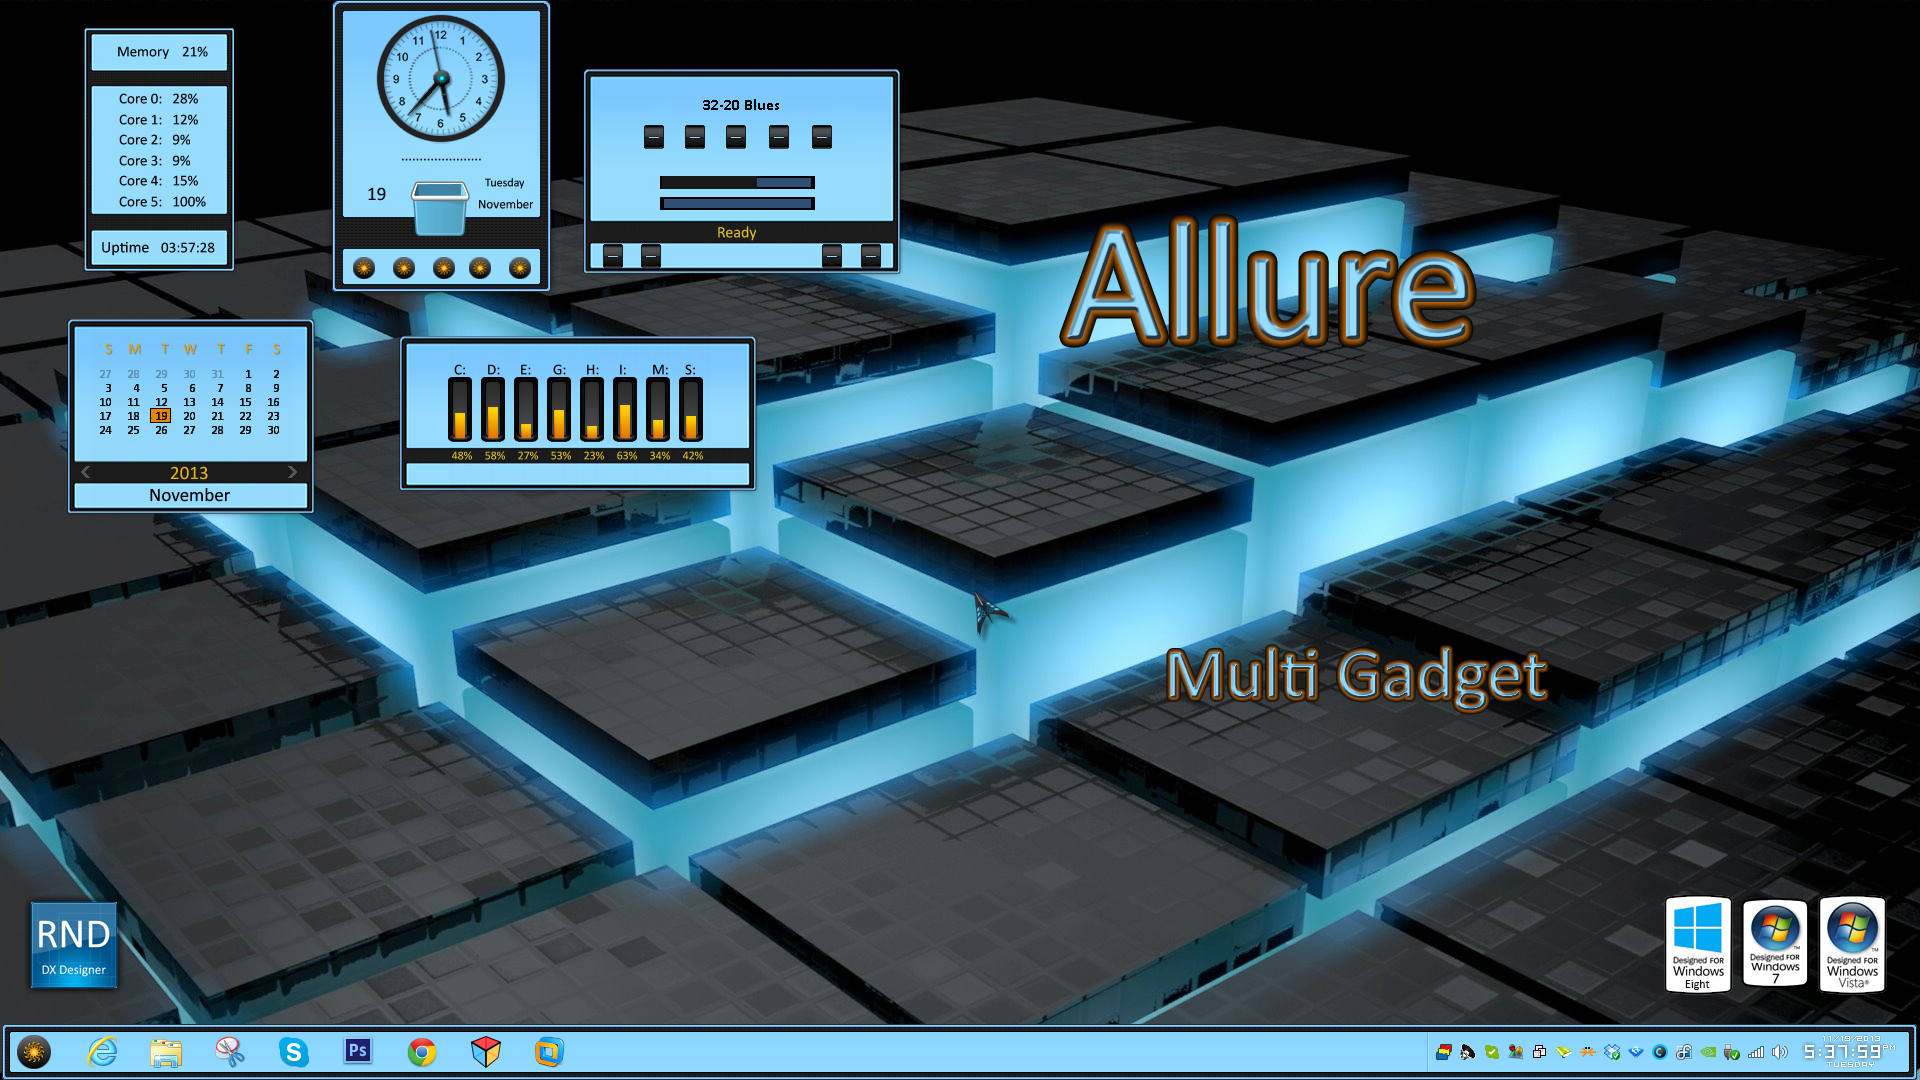 Allure Multi Gadget